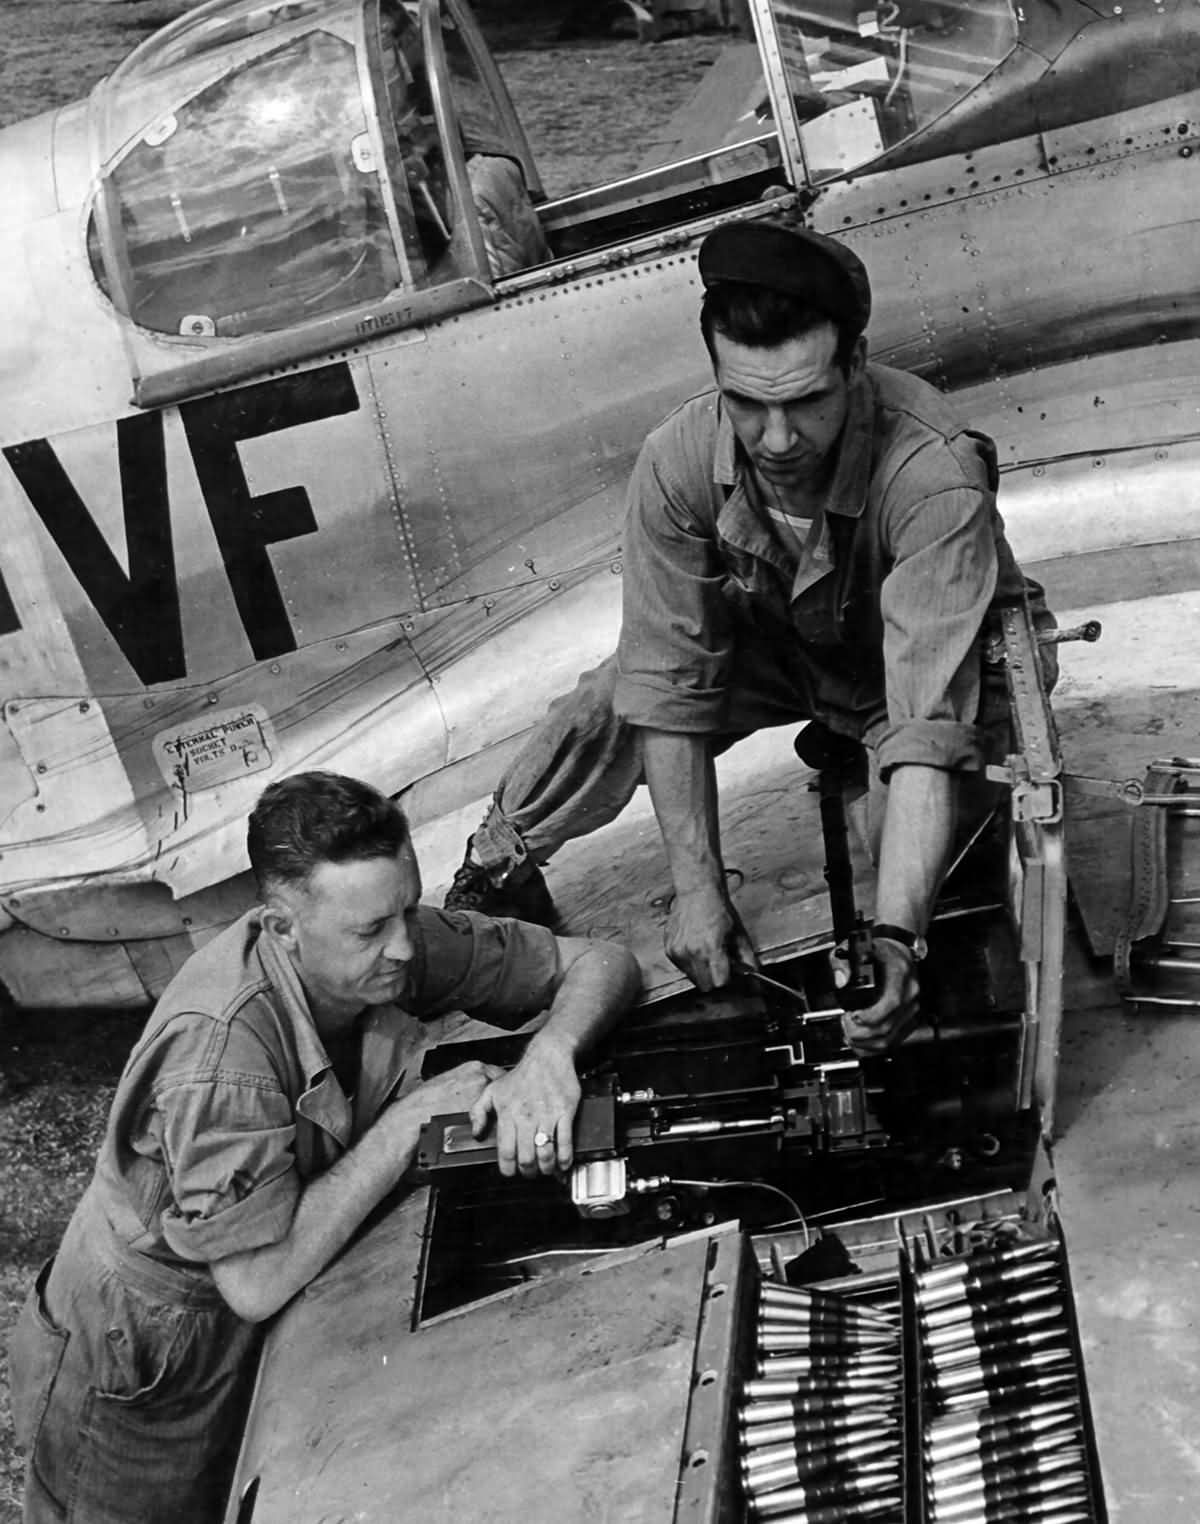 P-51-With-A-Malcolm-Hood-of-the-336th-Fi